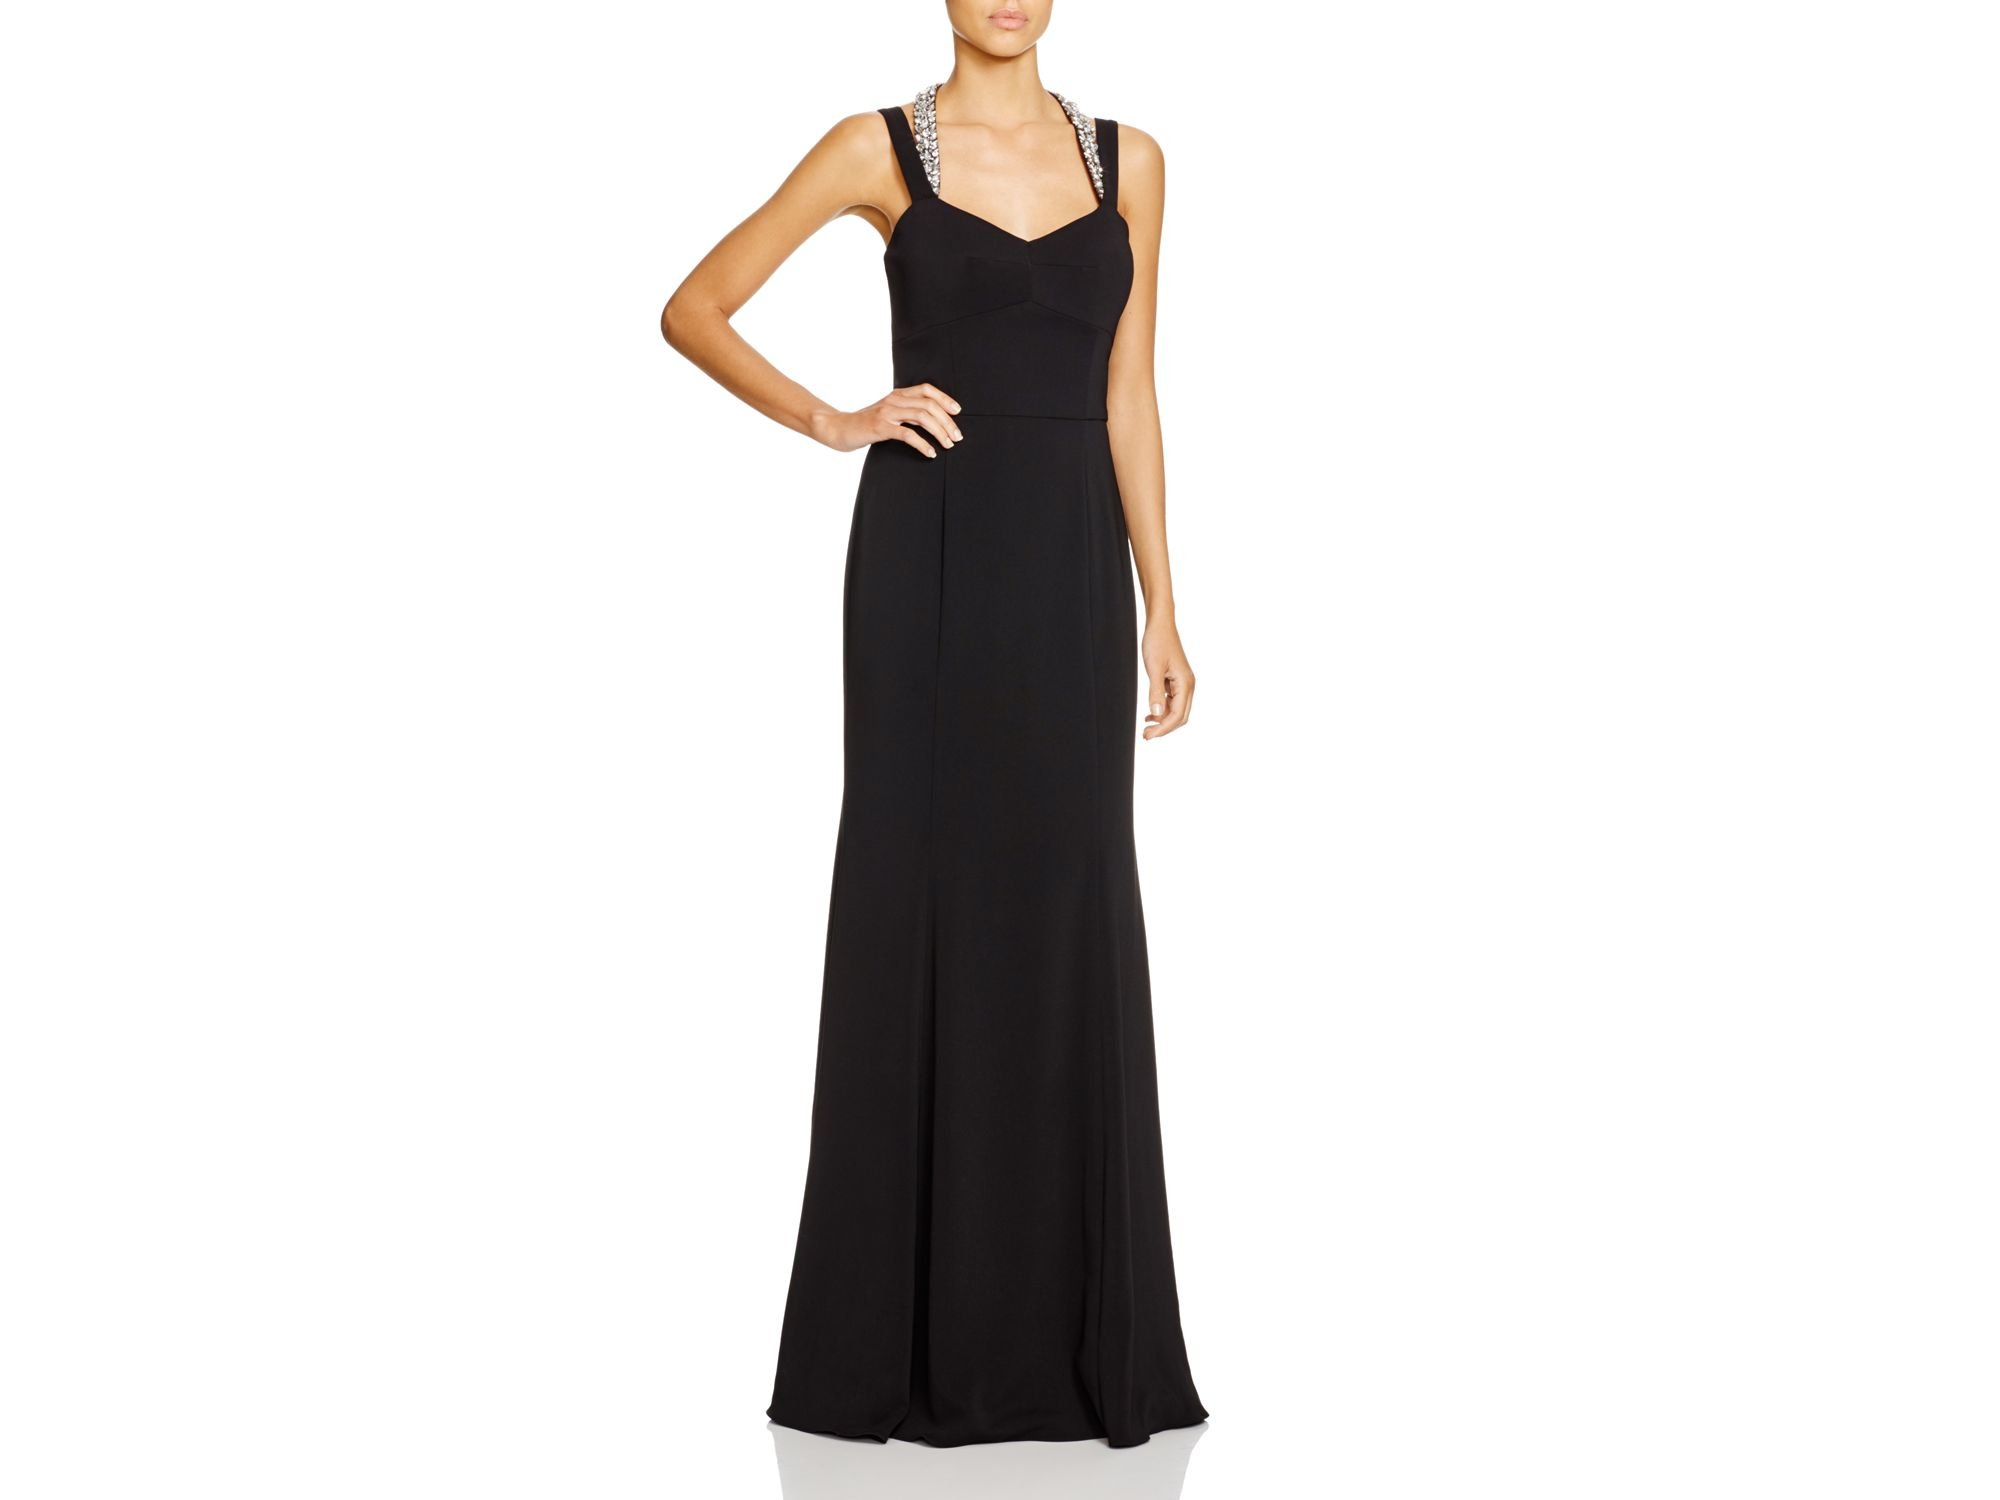 Lyst - Js Collections Beaded Strap Crepe Gown in Black